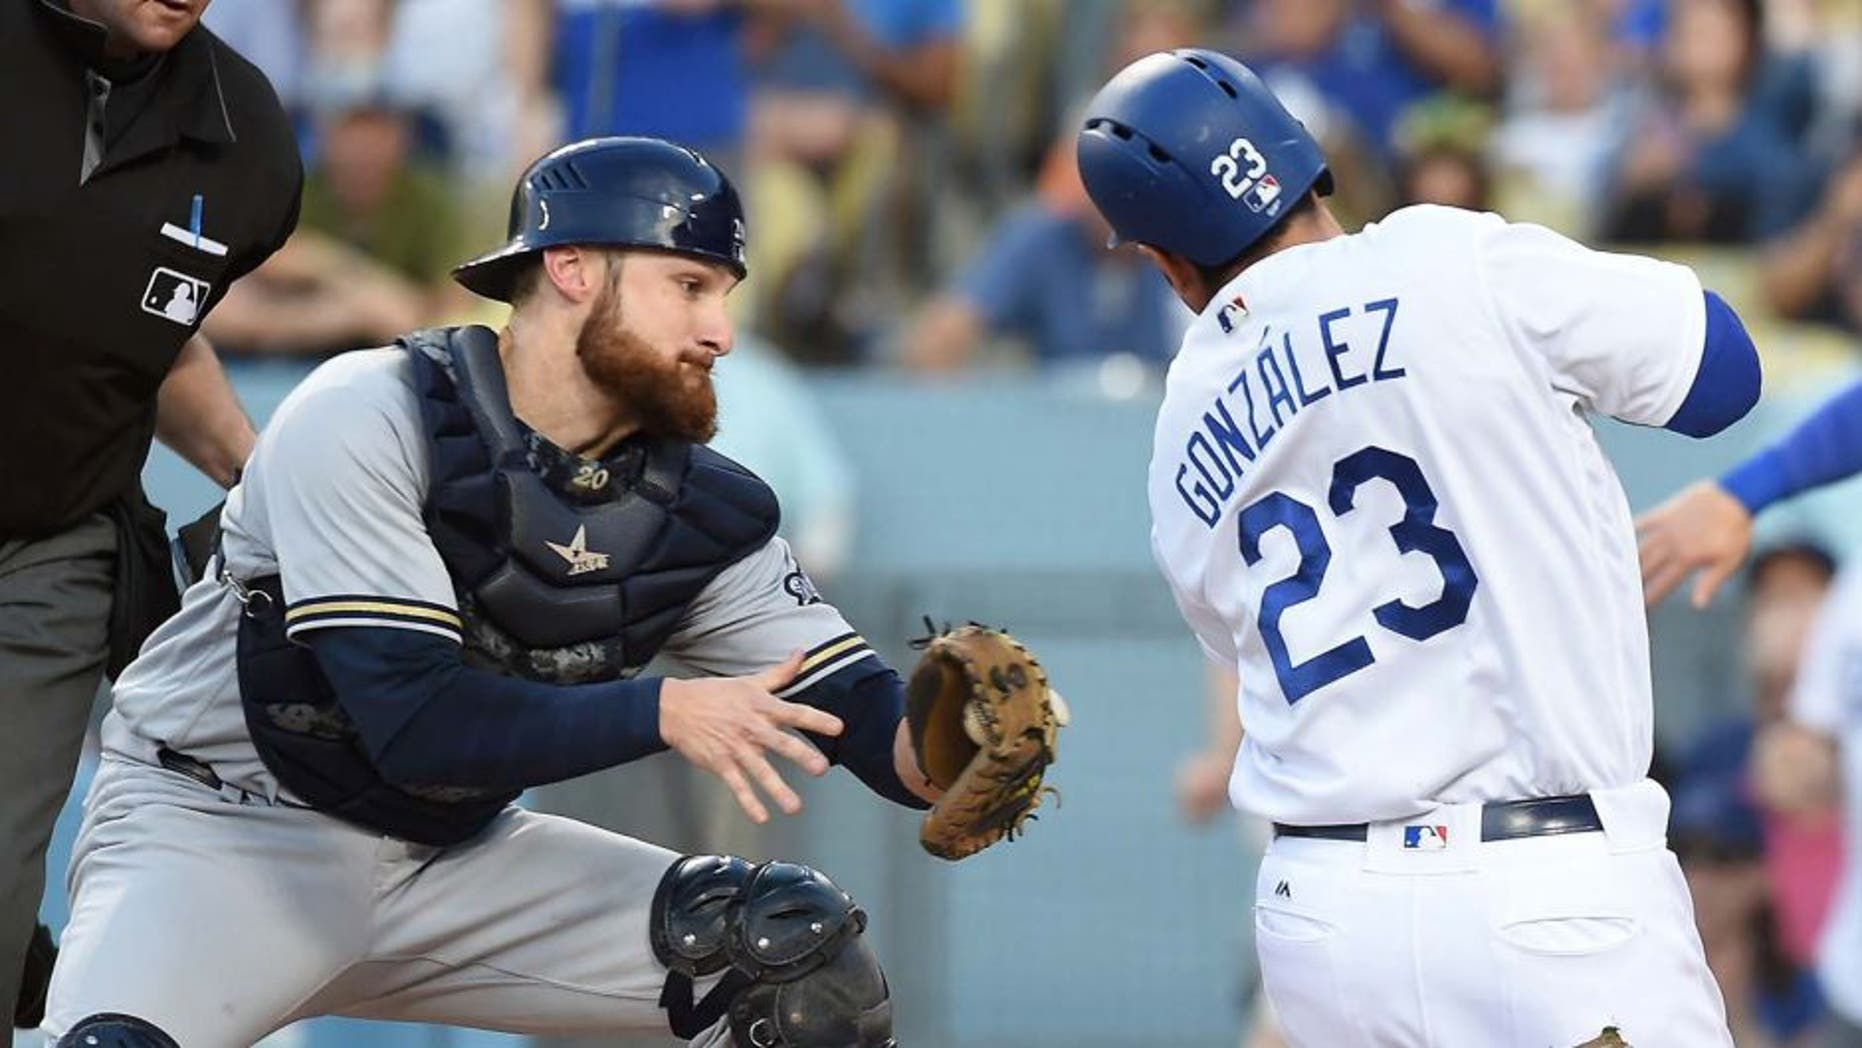 Milwaukee Brewers catcher Jonathan Lucroy tags out Los Angeles Dodgers first baseman Adrian Gonzalez in the second inning at Dodger Stadium in Los Angeles on June 18, 2016.